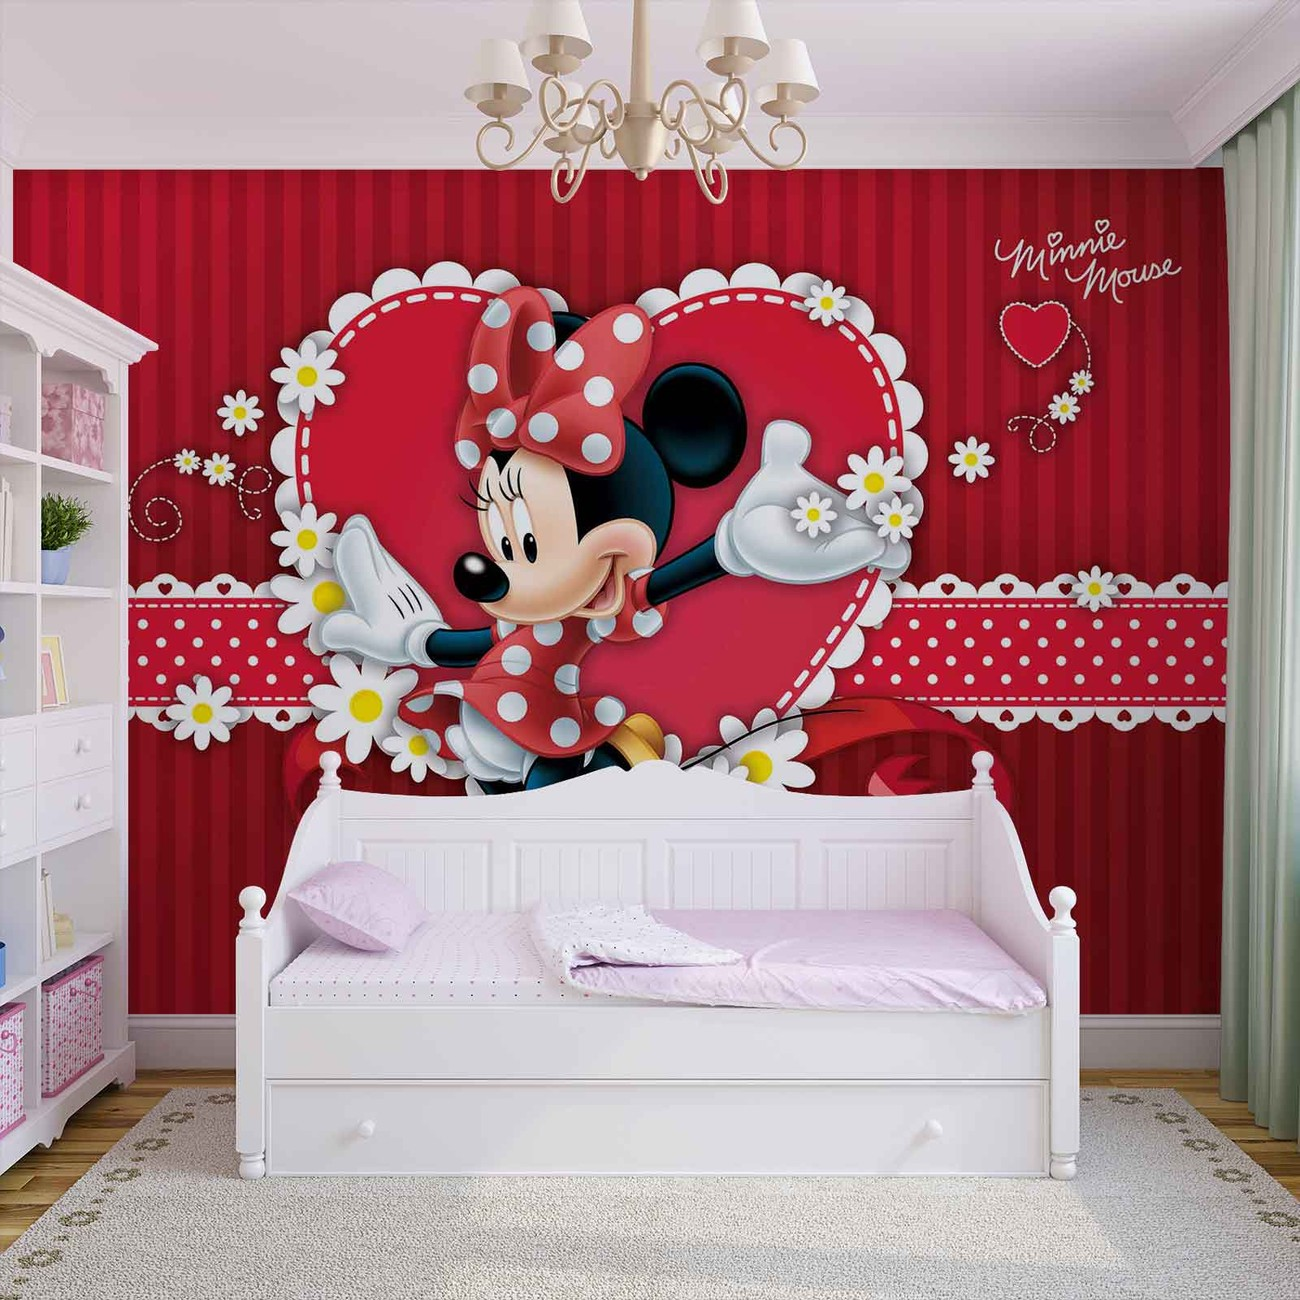 carta da parati disney topolina minnie. Black Bedroom Furniture Sets. Home Design Ideas